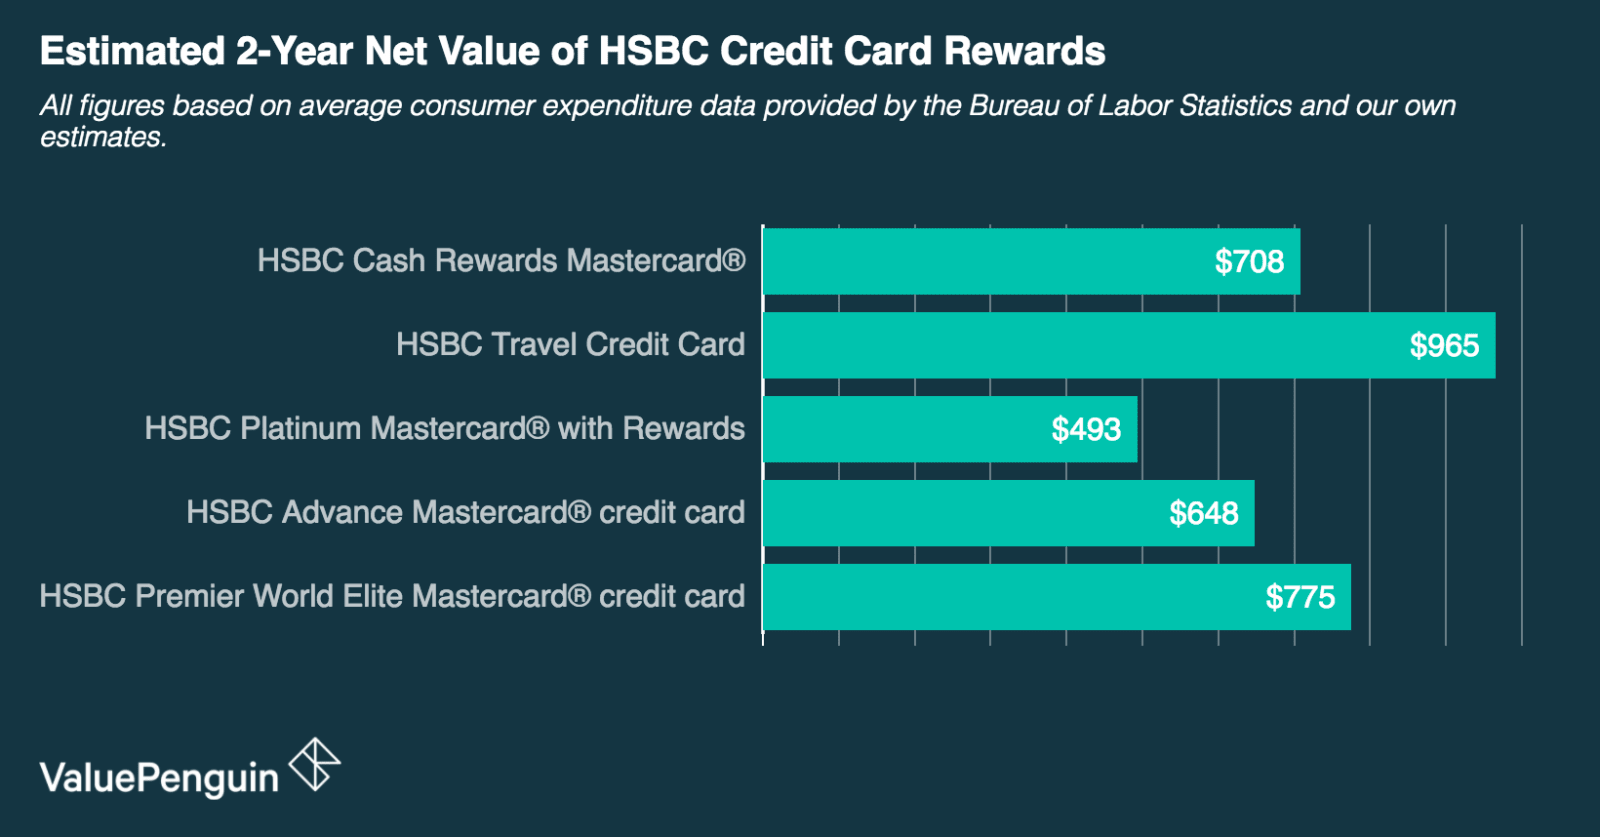 A graph showing the approximate value of rewards for HSBC credit cards given average consumer expenditures.